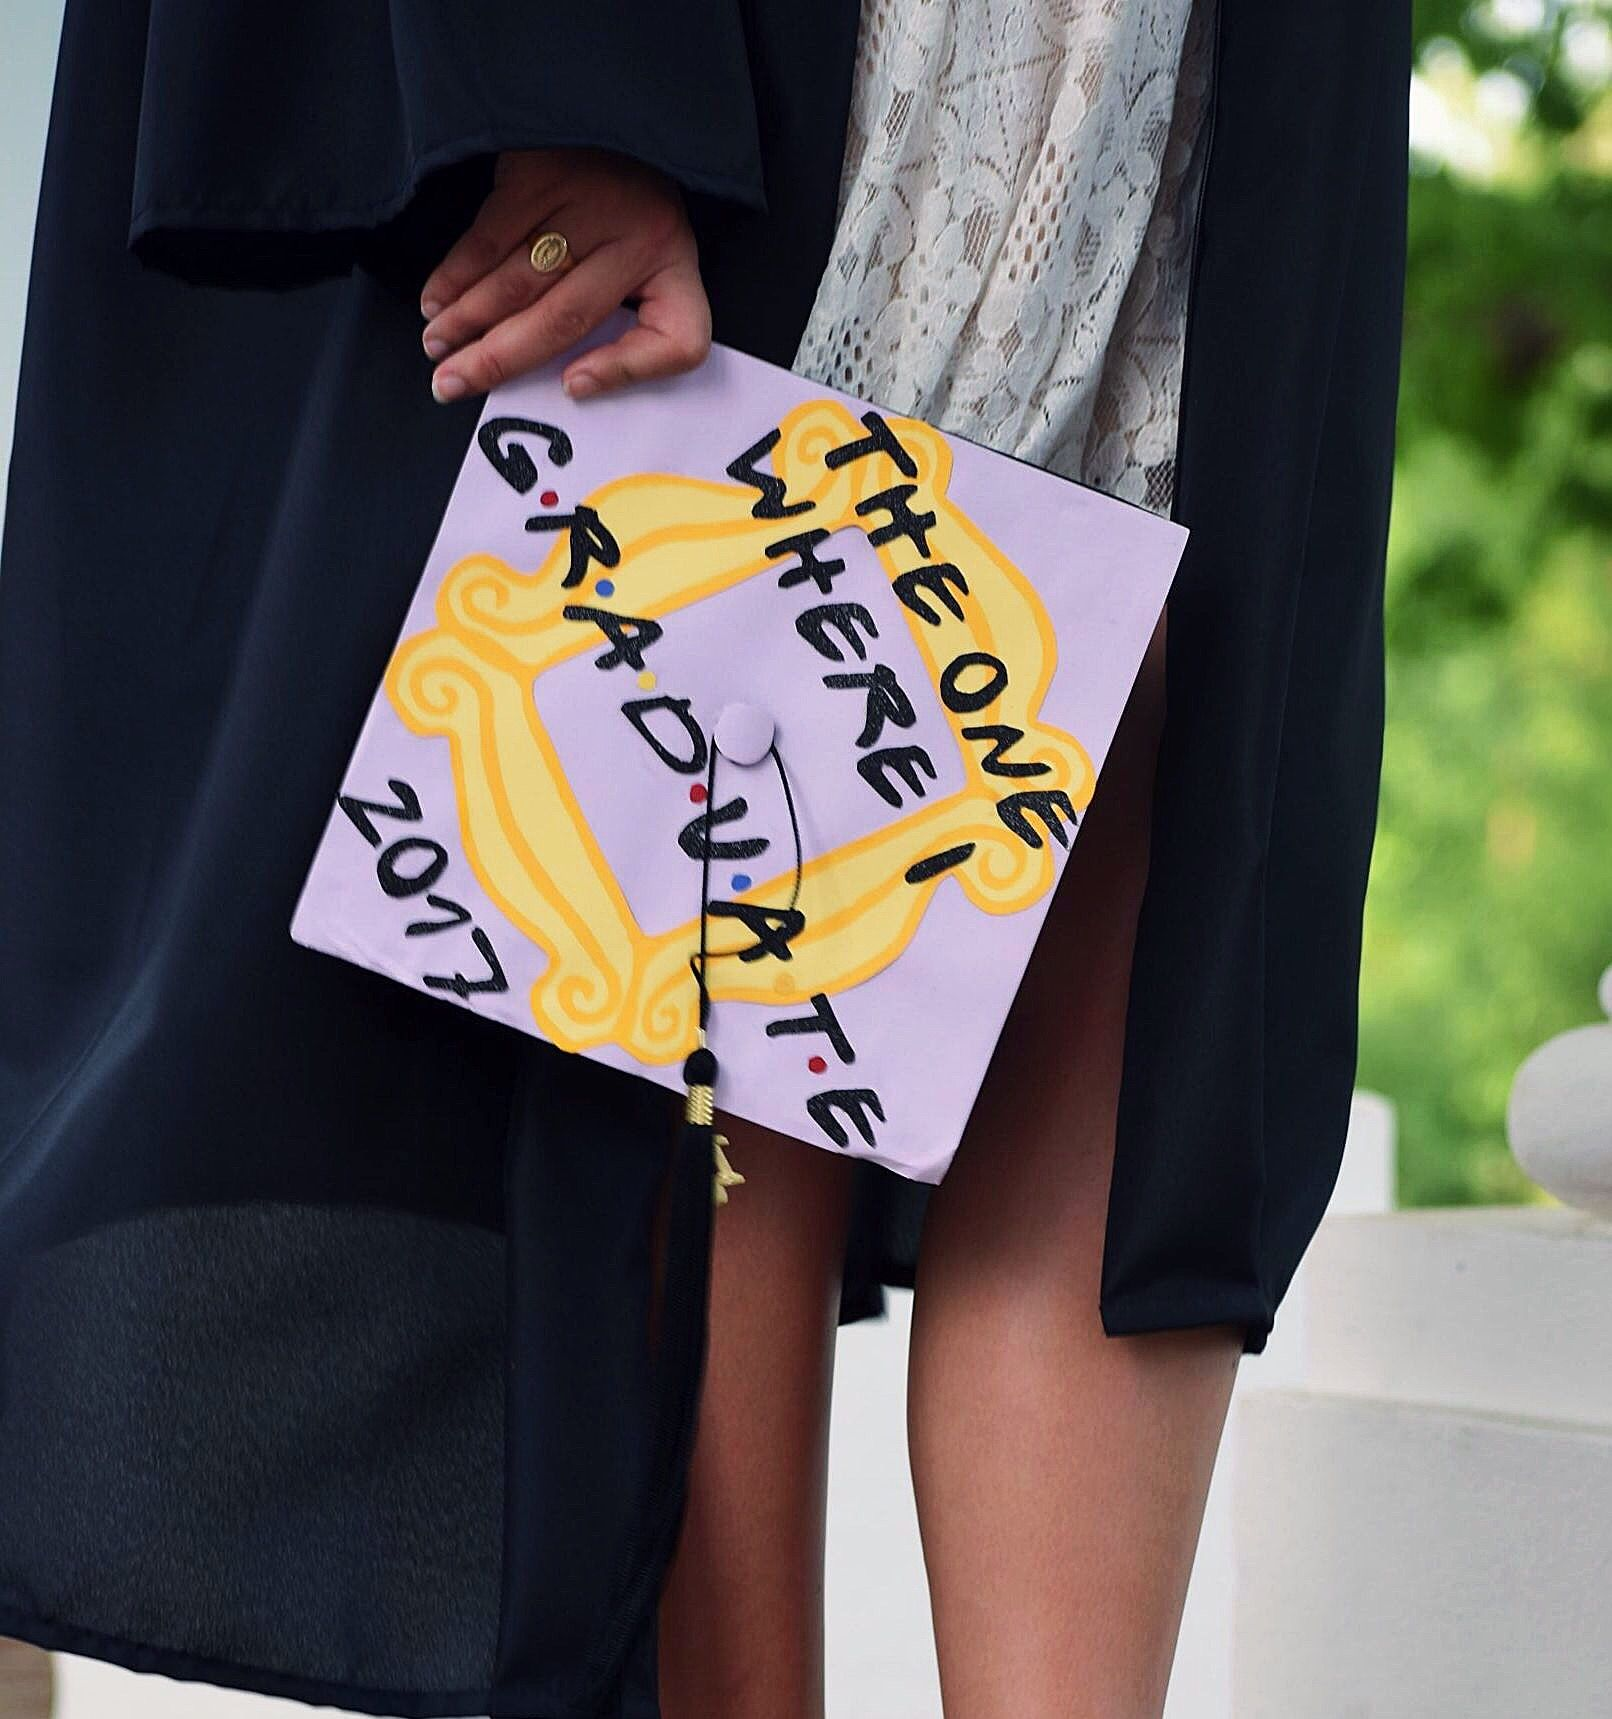 Friends themed graduation cap | Graduation cap, Friend ...